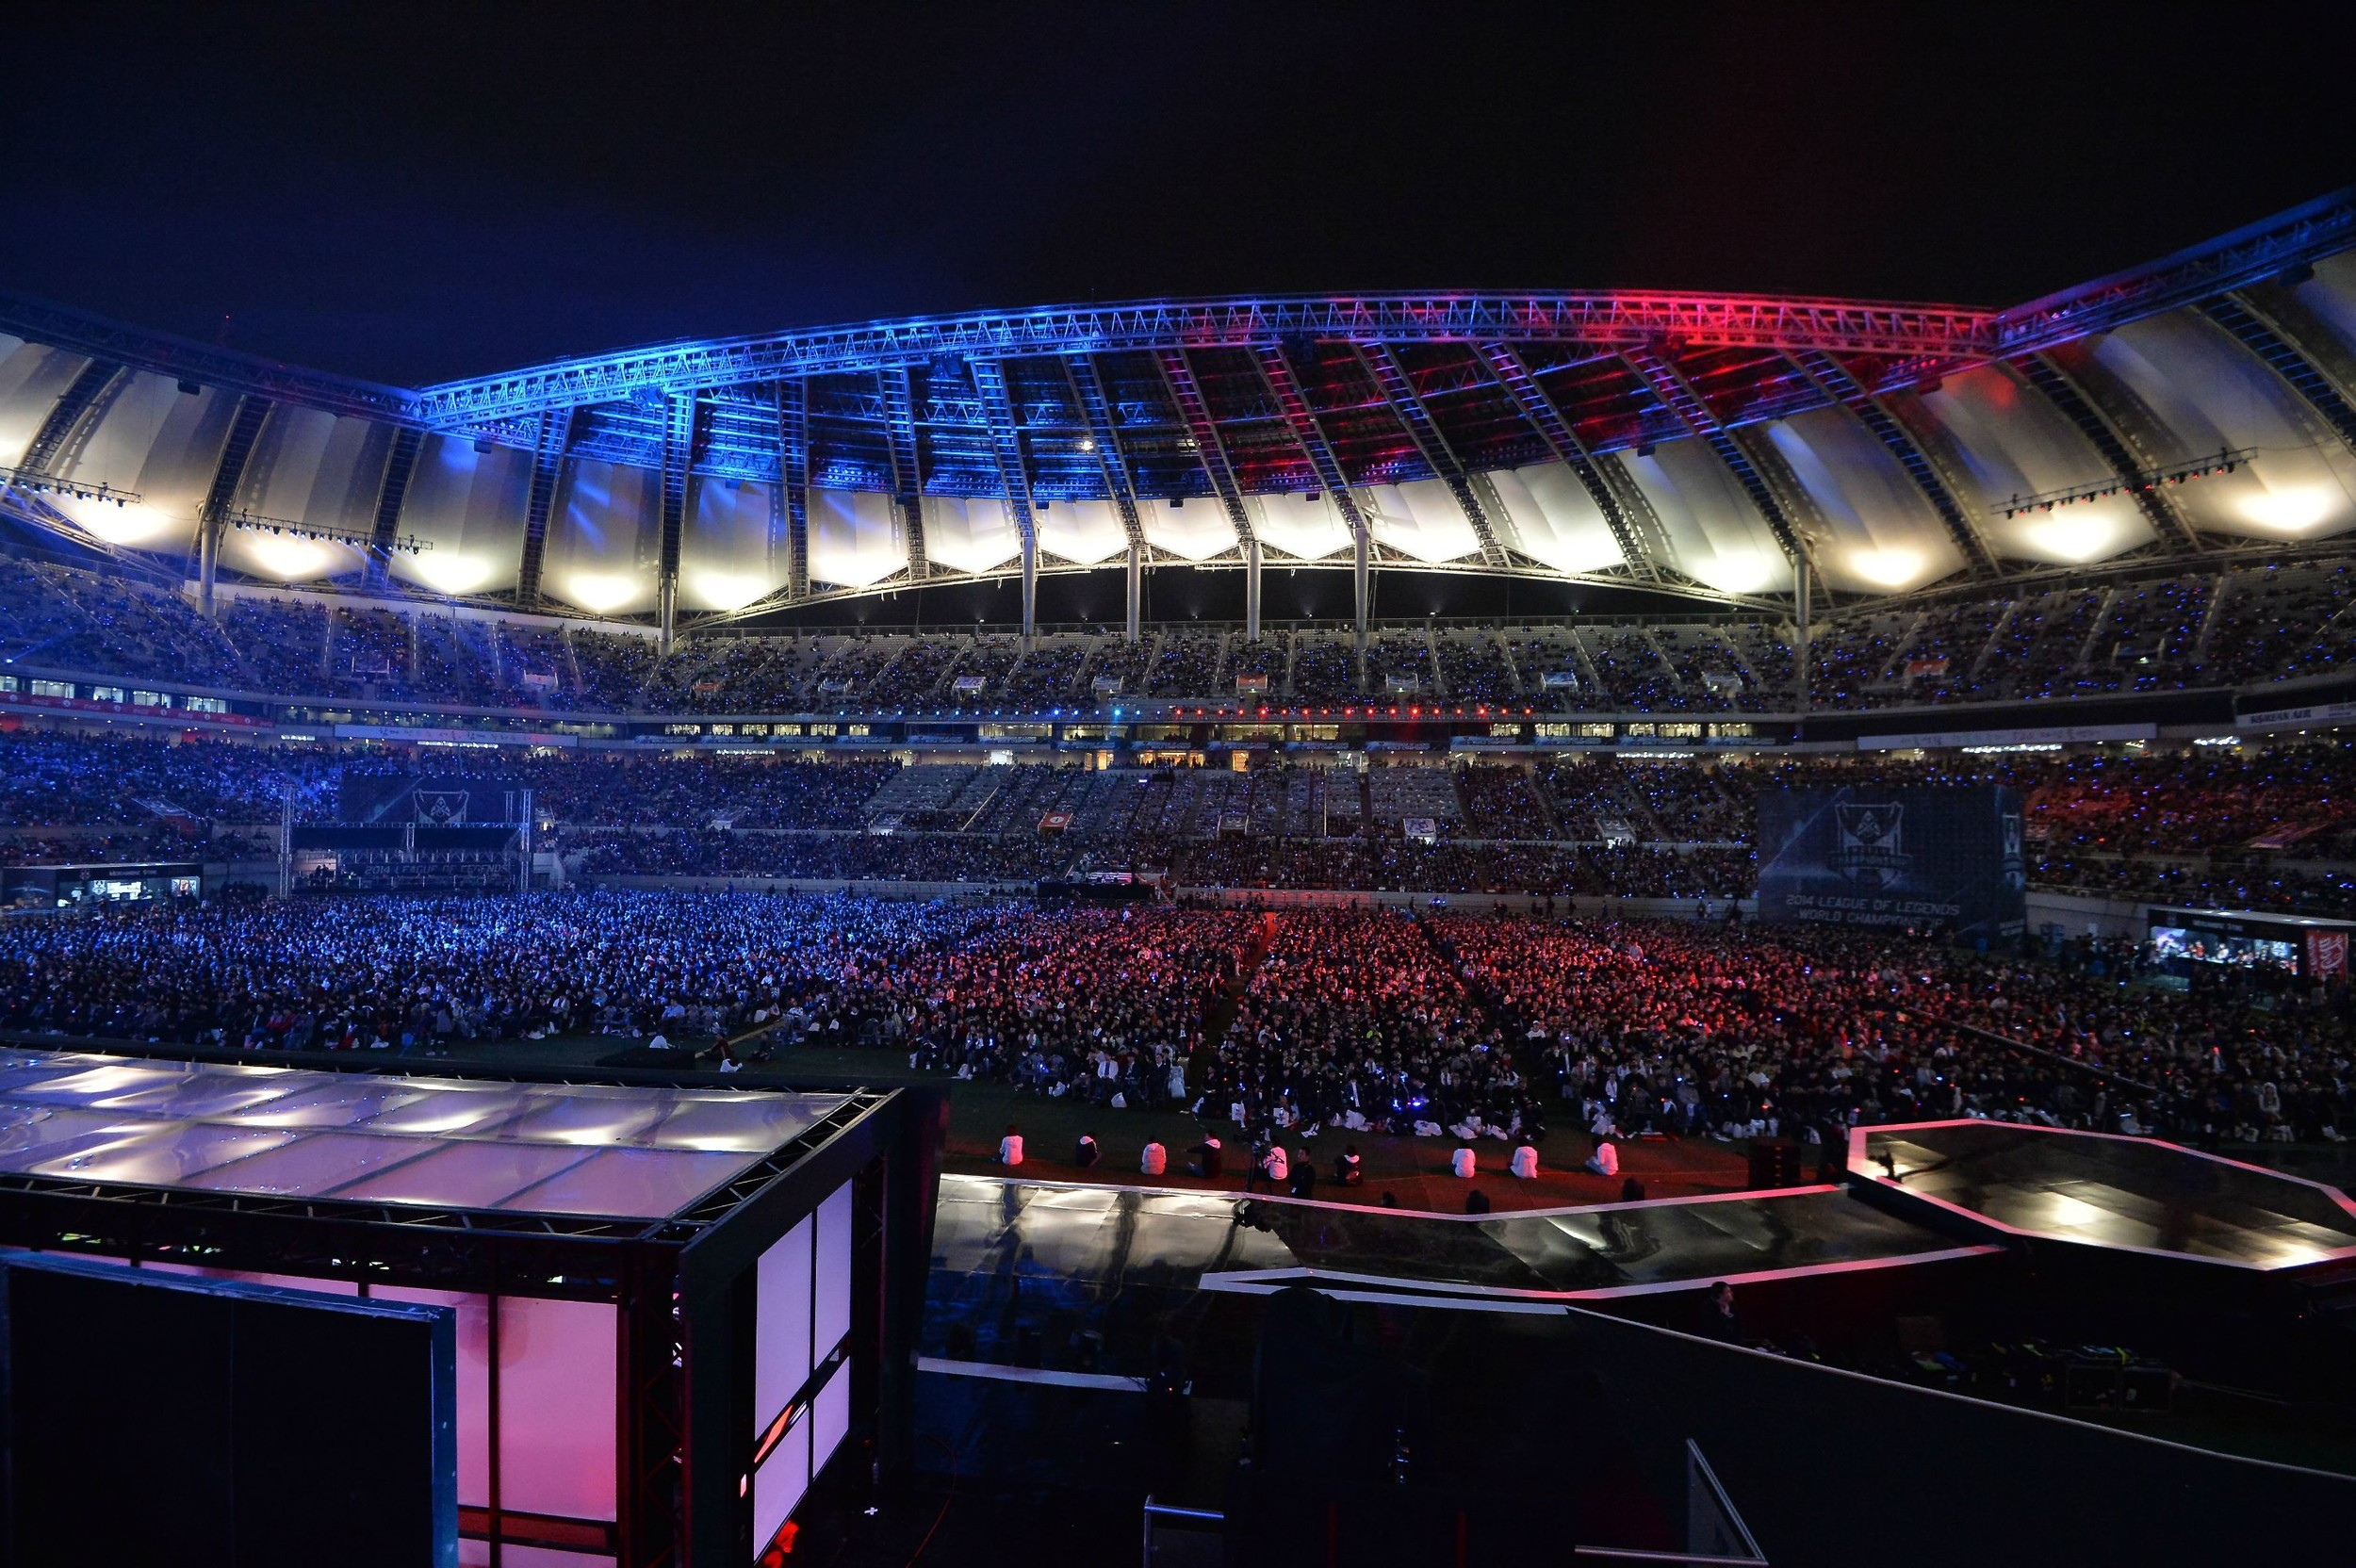 Samsung revives World Cyber Games Trademark: could WCG ...